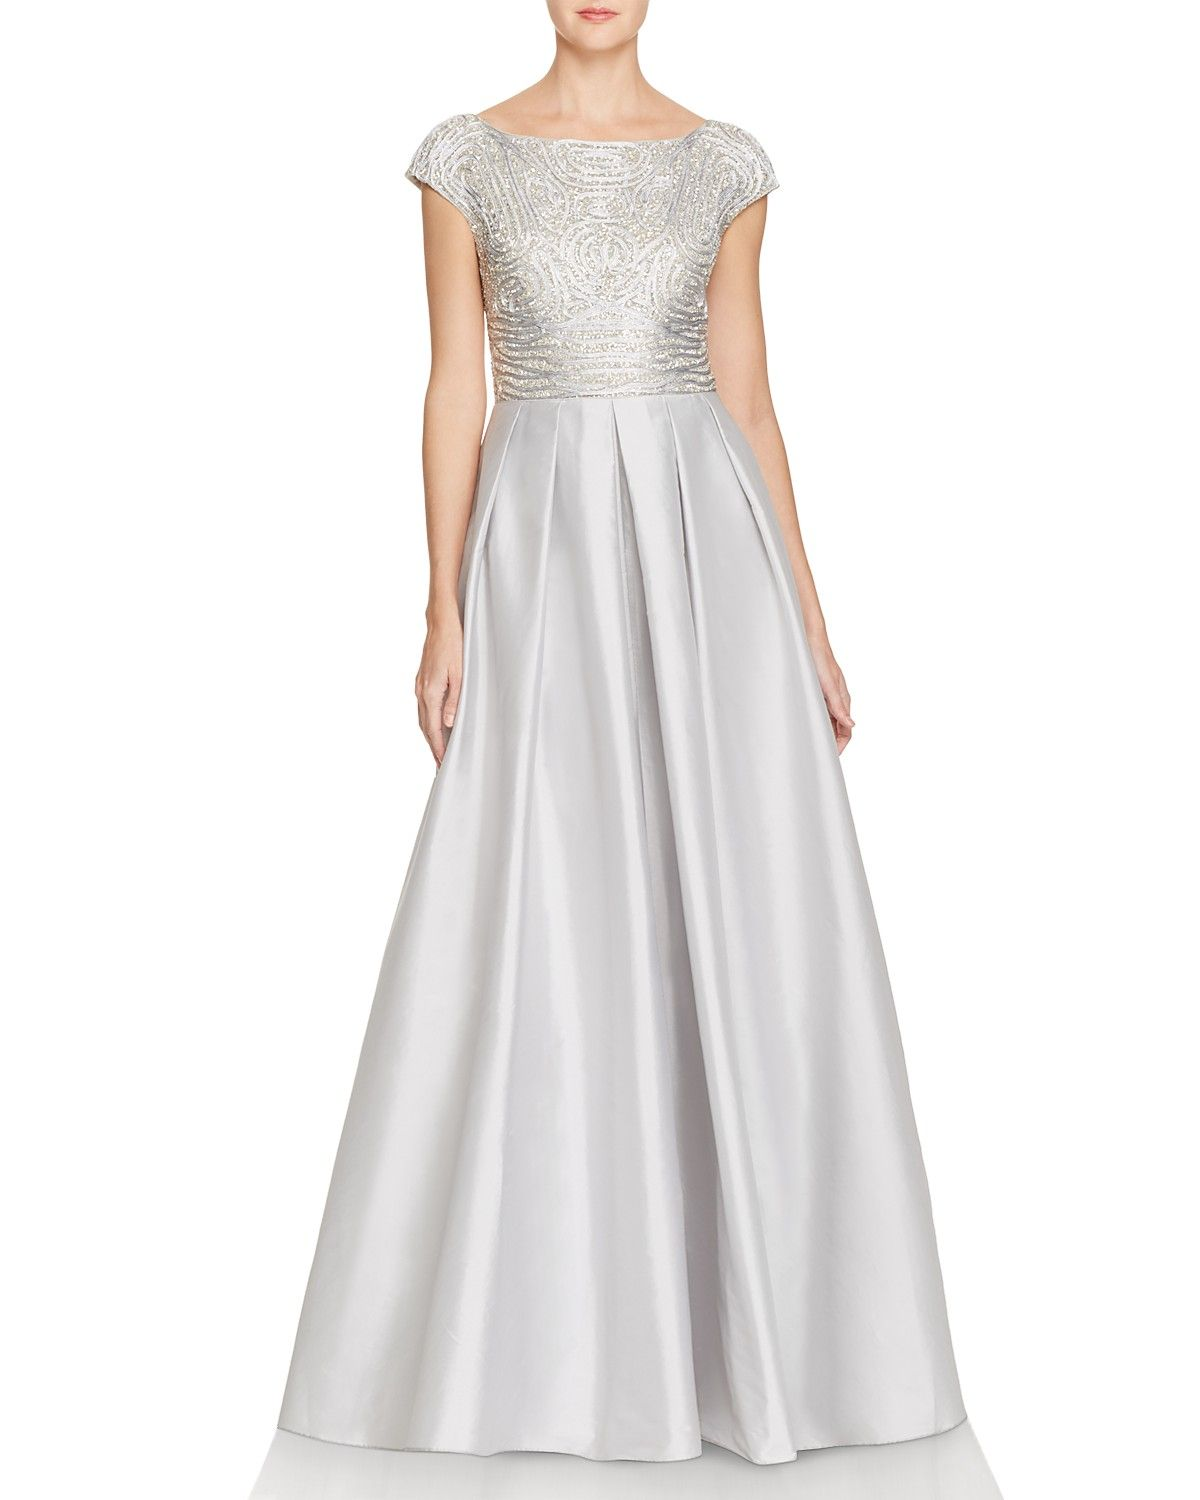 Elegant Embroidery Embellishment Ball Gown Traditional: Aidan Mattox Embellished Cap Sleeve Gown